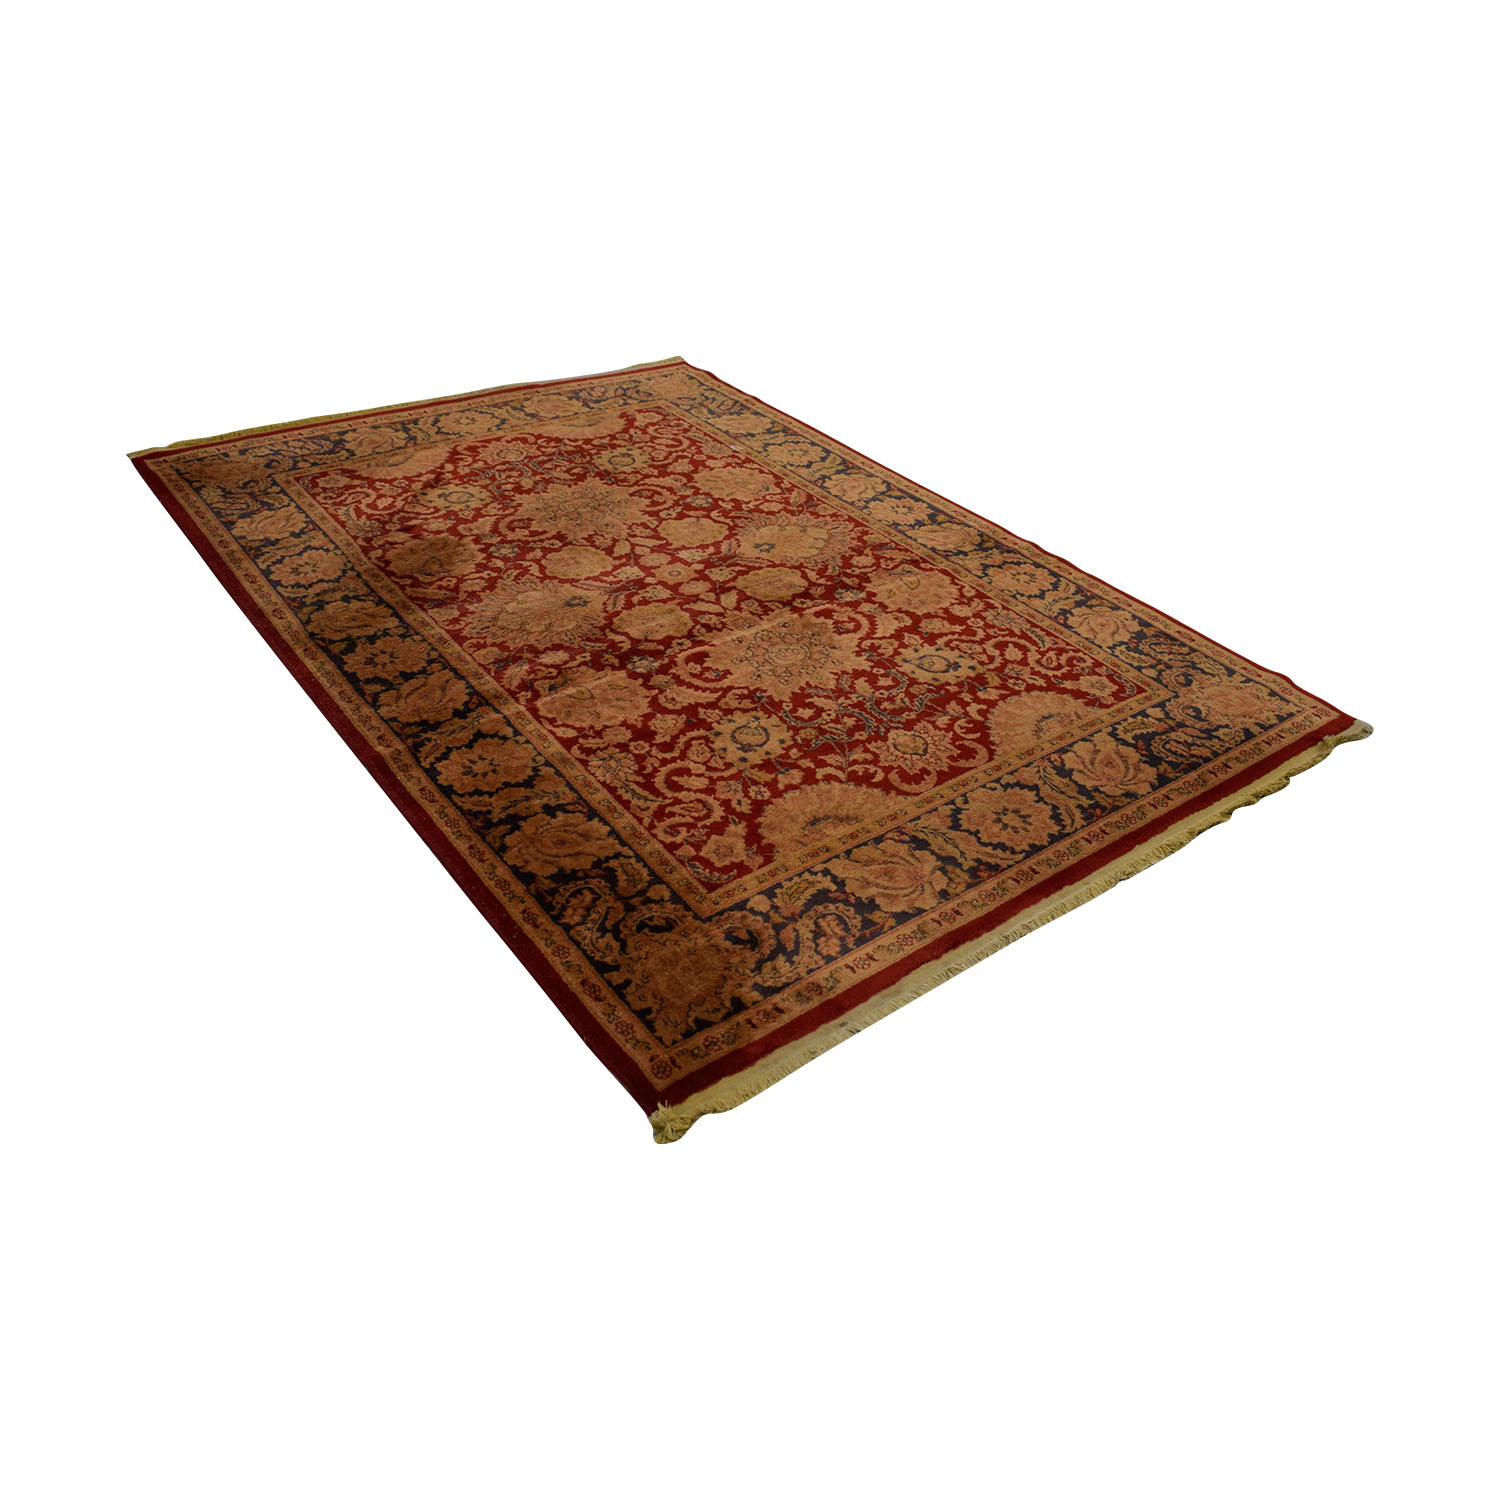 Osta Carpets Osta Carpets Belgian Wool Tibetan-Inspired Rug on sale